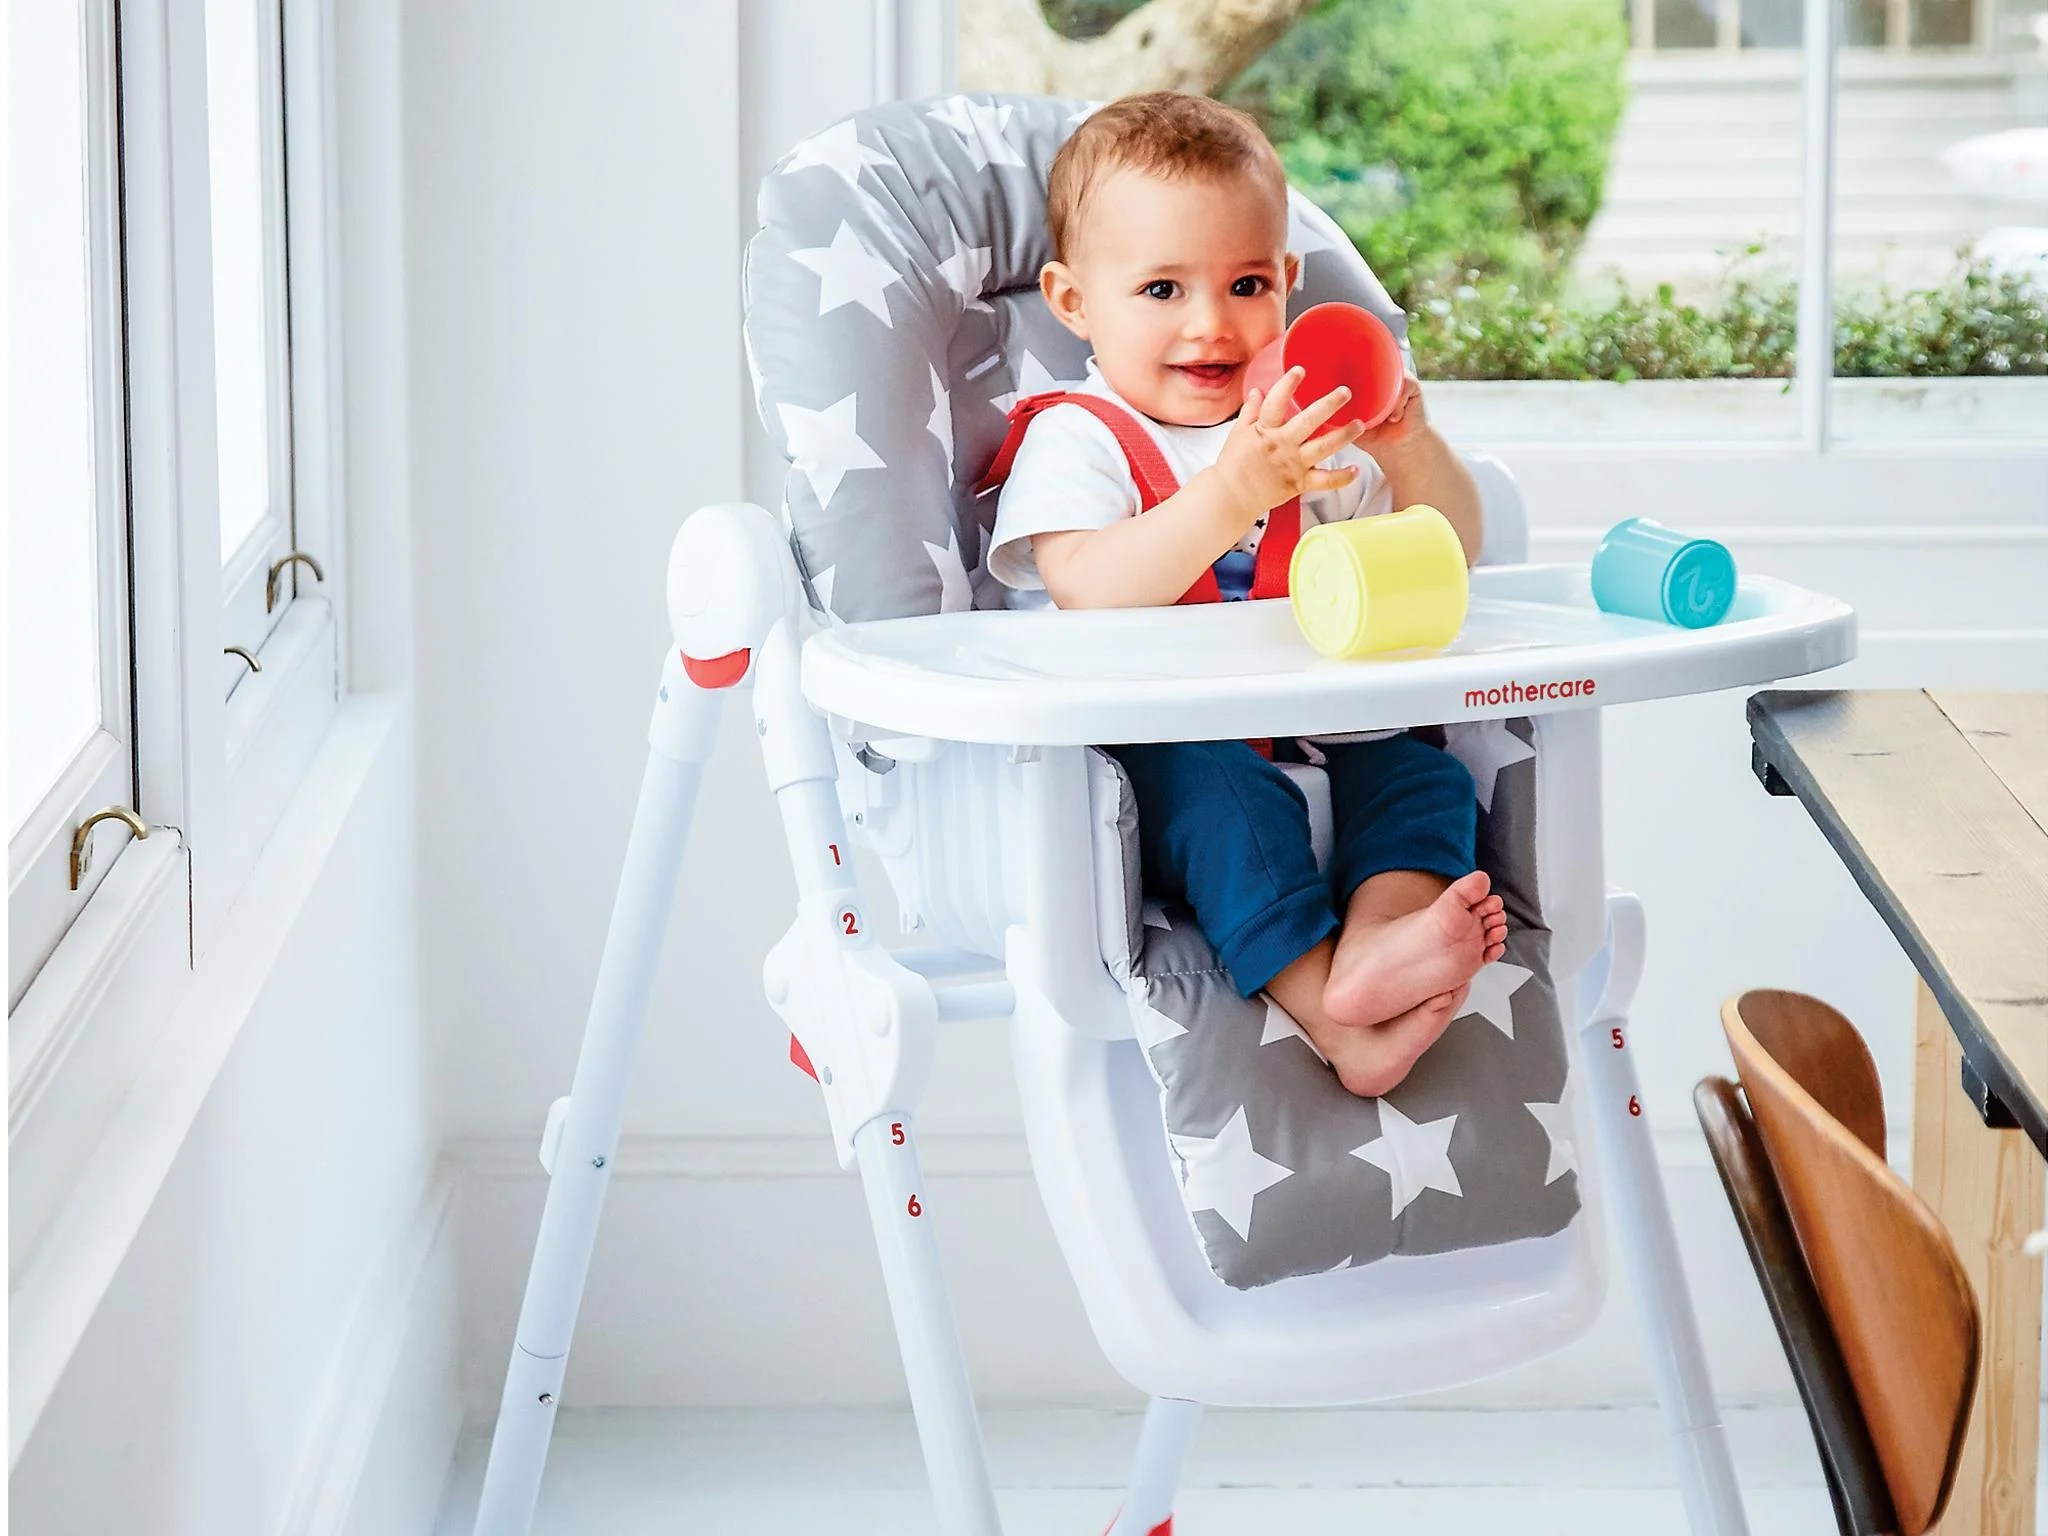 high chairs uk hanging chair bedroom 12 best highchairs the independent strong and stable stylish products are available for all budgets